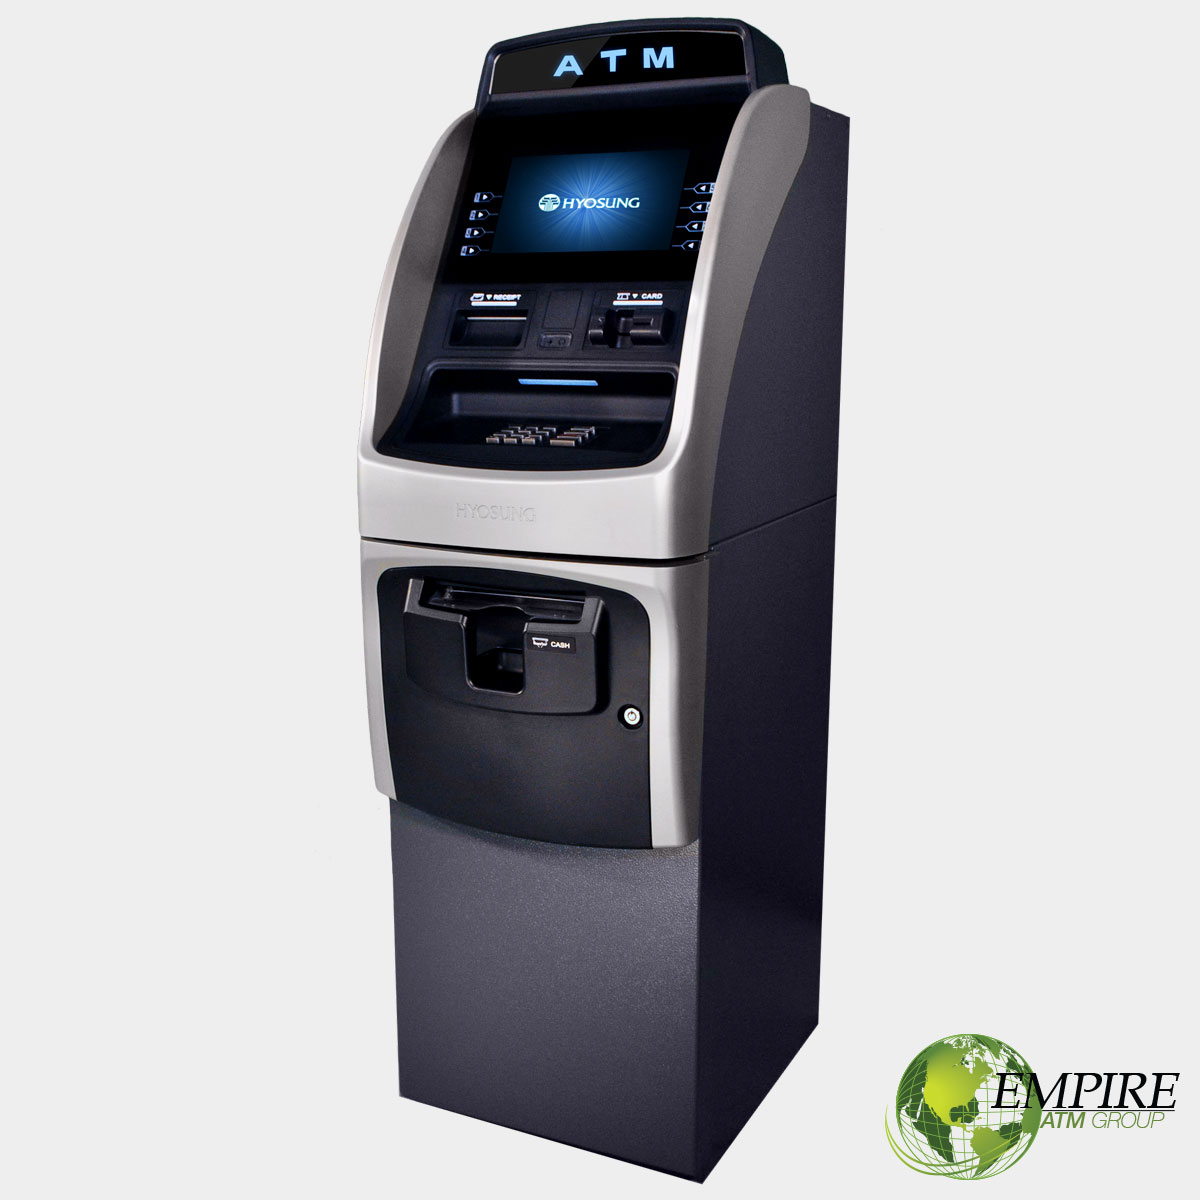 Nautilus Hyosung Atm Machines Wiring Diagrams Diagram 2700ce Machine Empire Group Rh Empireatmgroup Com Paper For